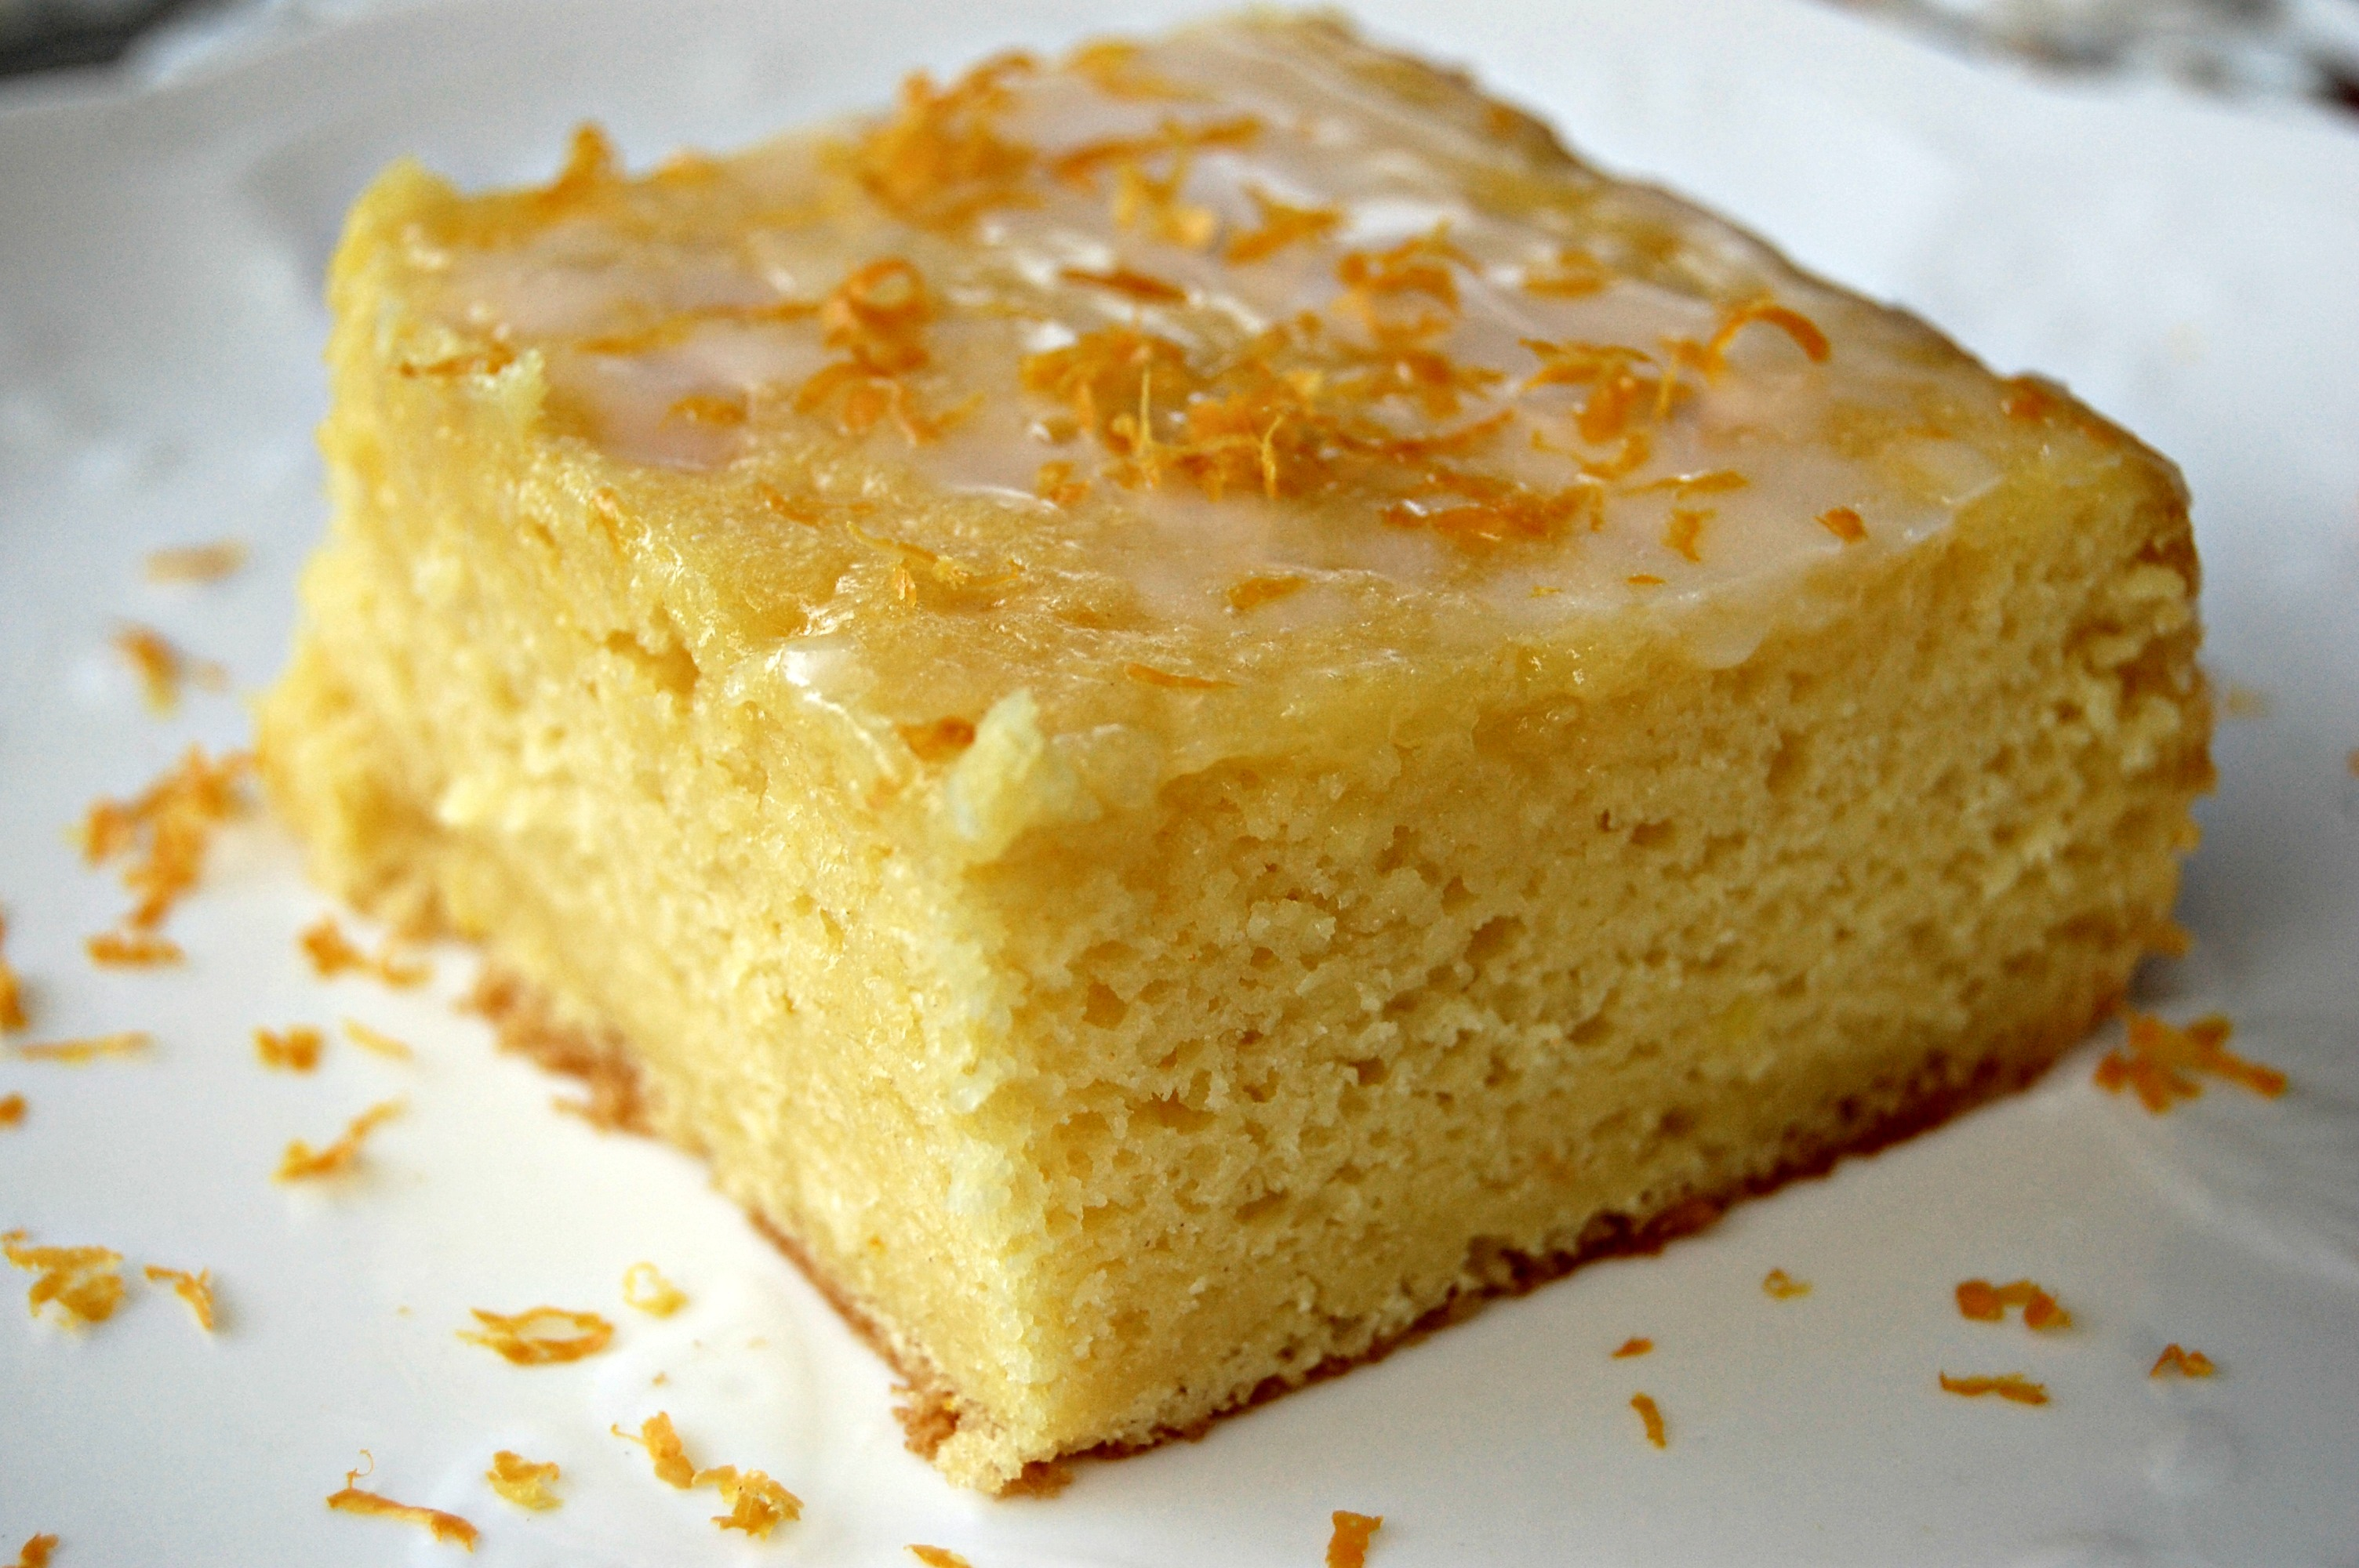 Lemon Cake Using Cake Mix And Pudding